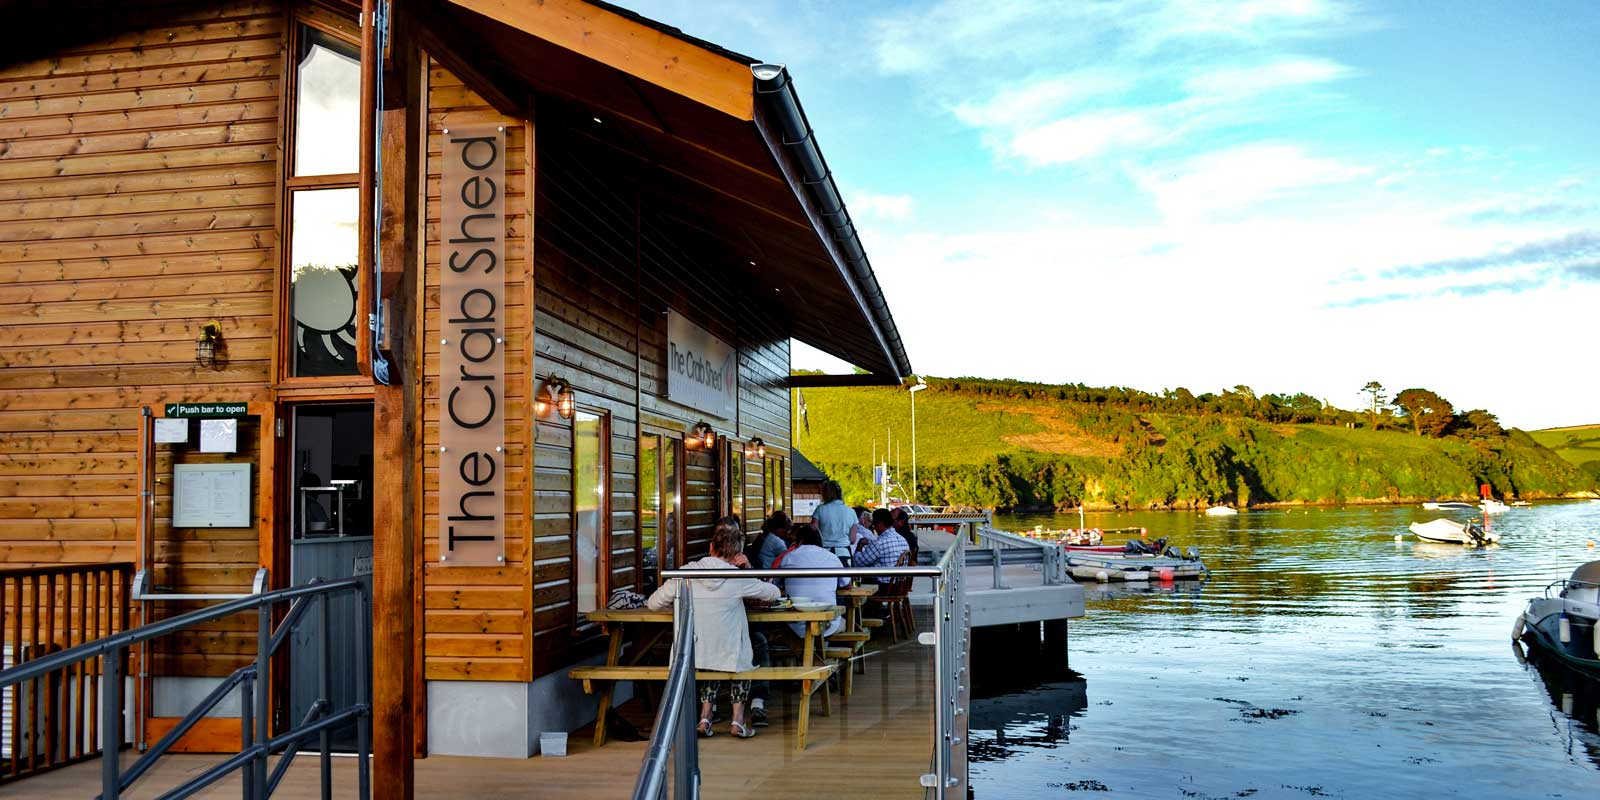 Crab Shed Salcombe - quayside seafood restaurant at the Fish Quay, Salcombe Harbour